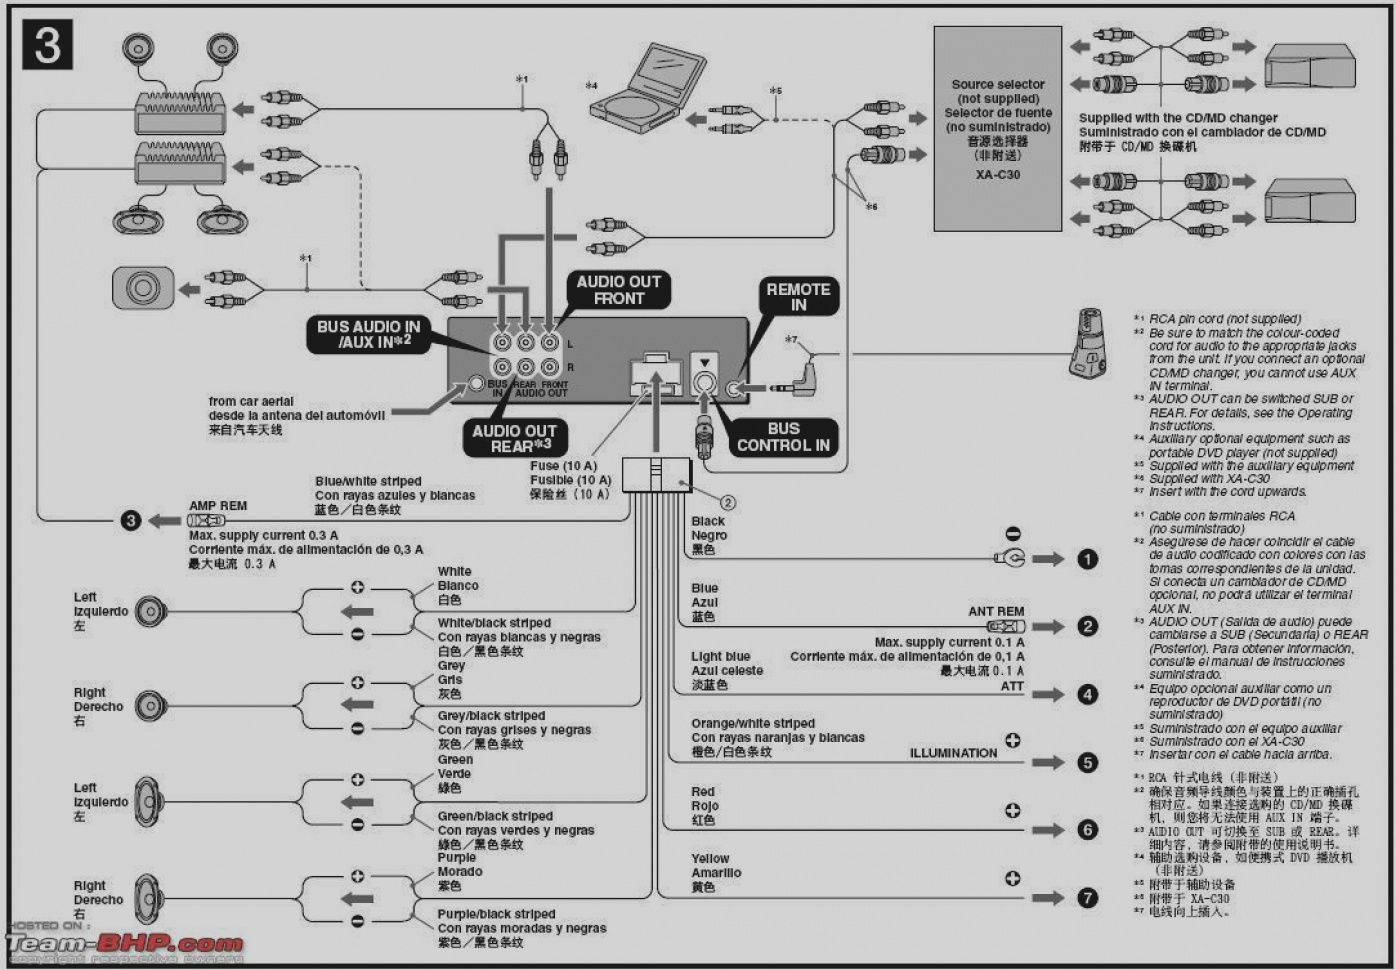 hight resolution of sony xplod cdx gt300 wiring diagram color wiring diagram sony cdx gt300 wiring harness